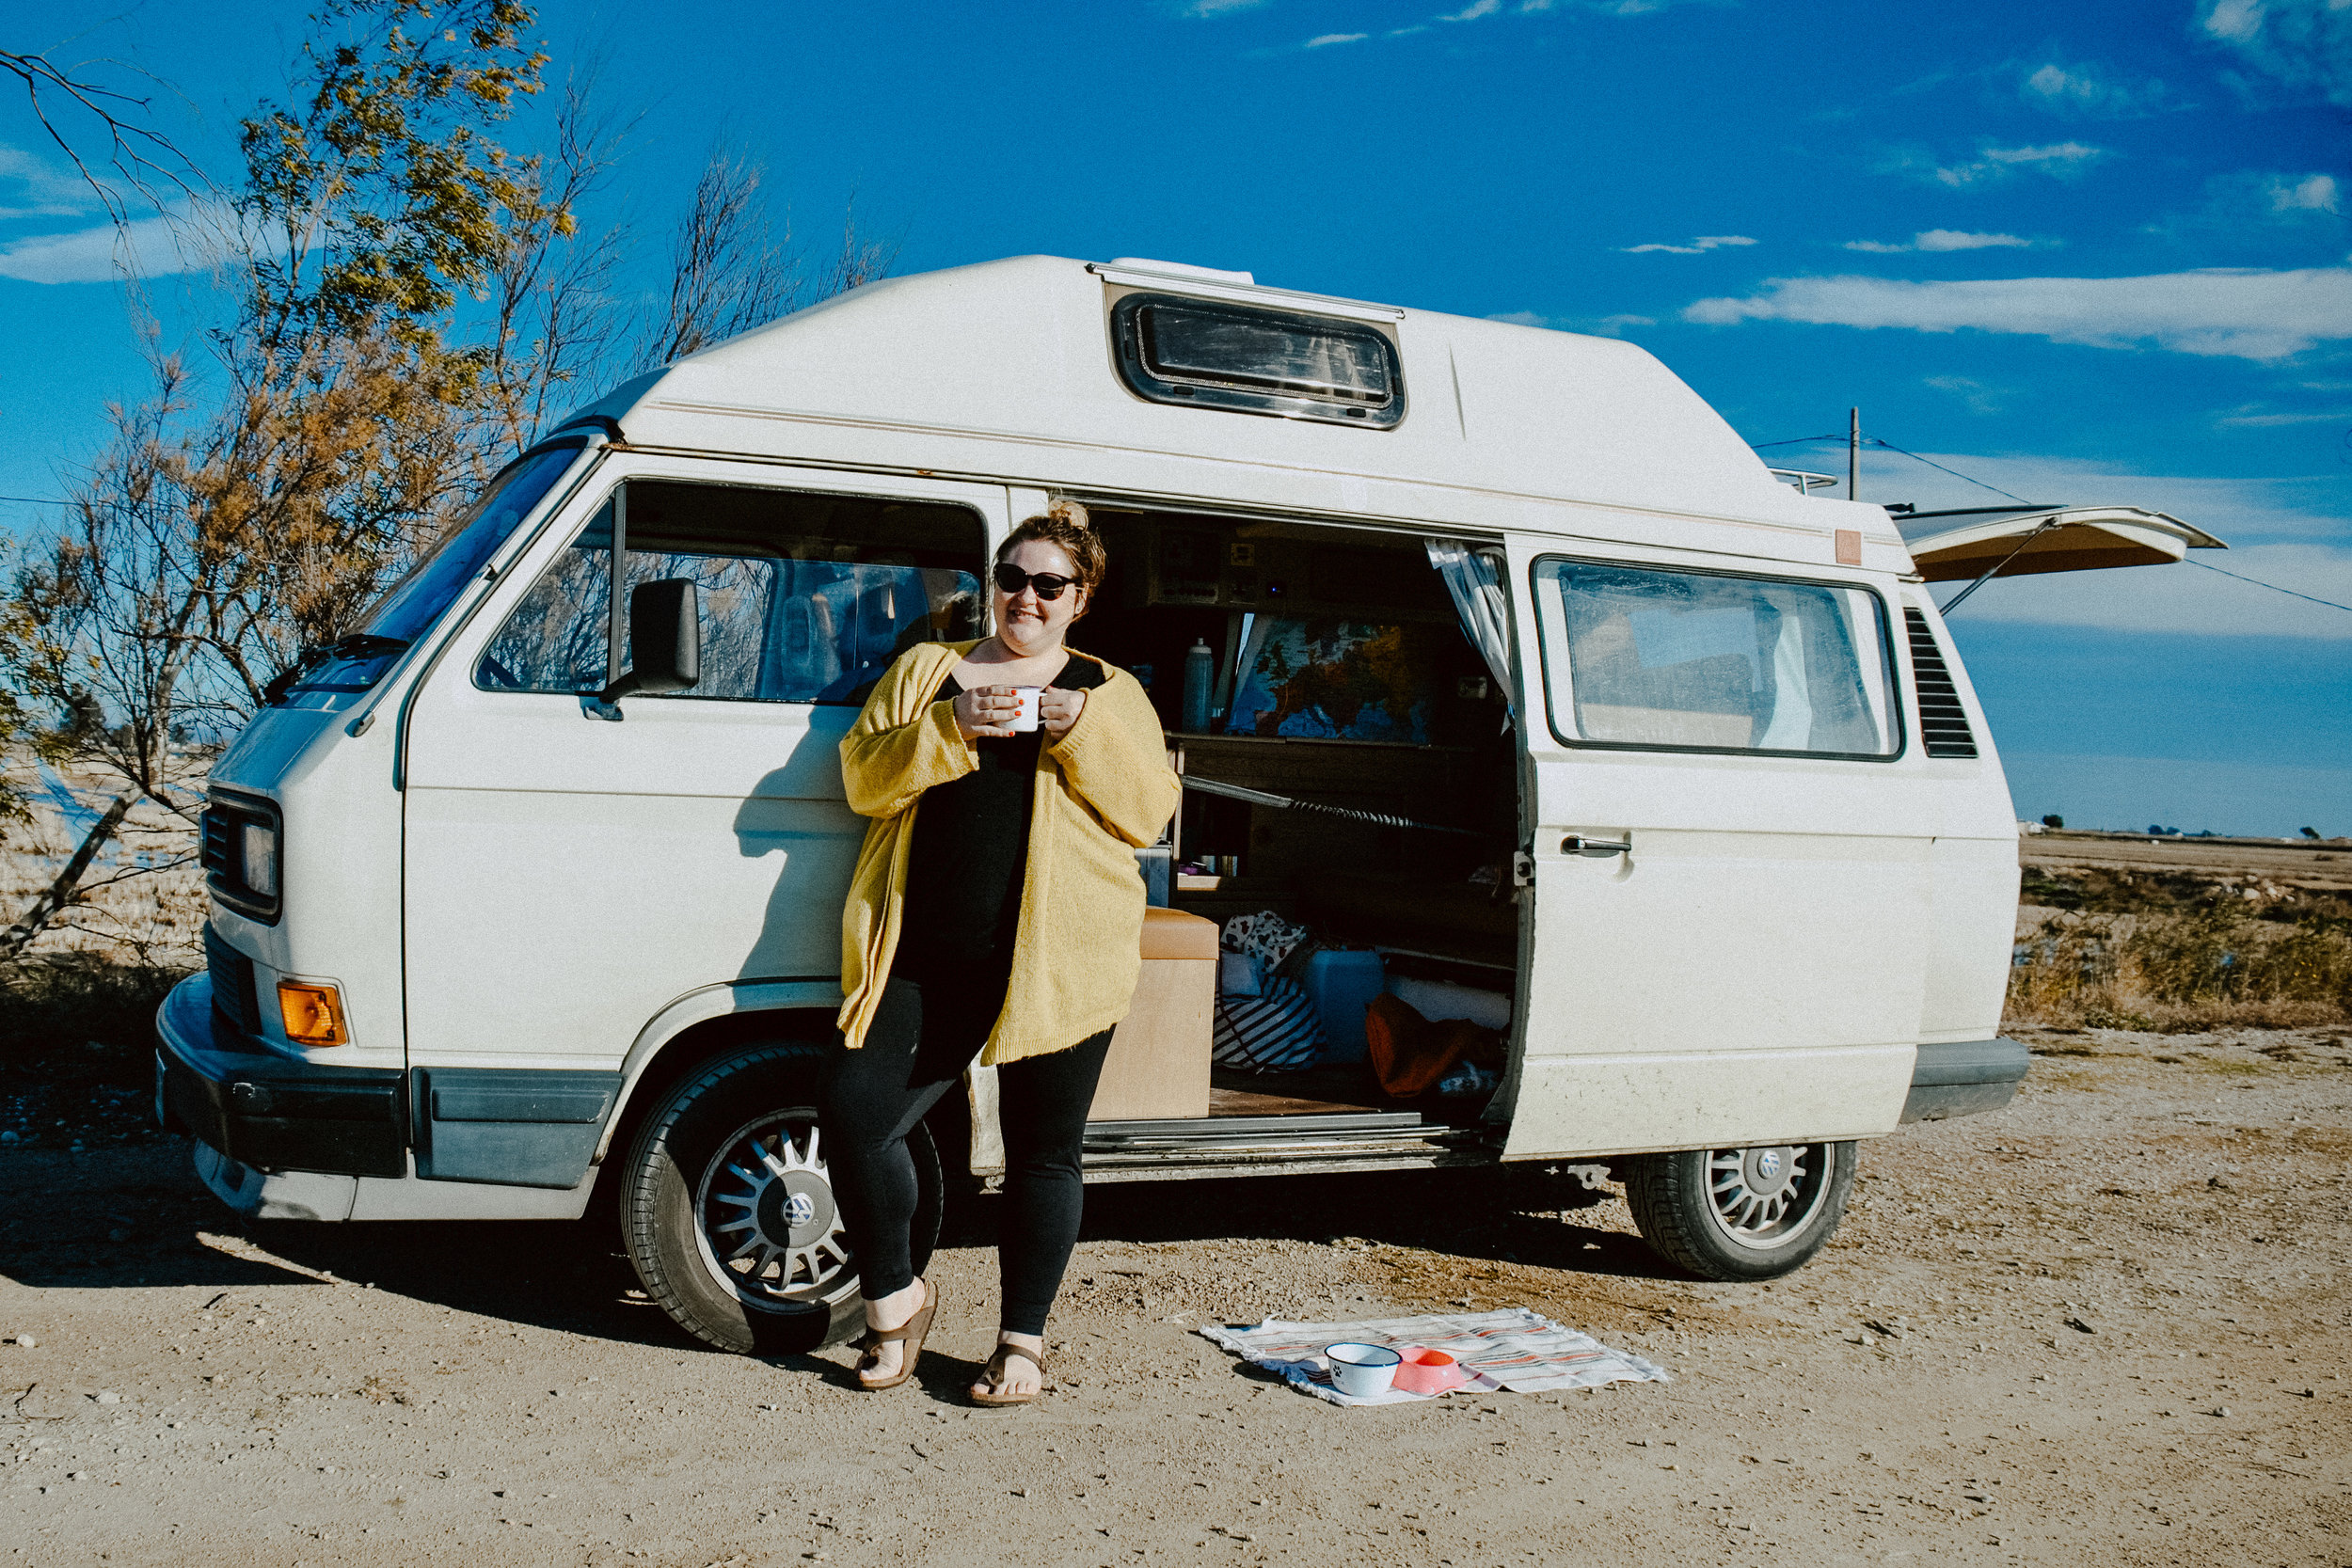 Carrie in the campervan